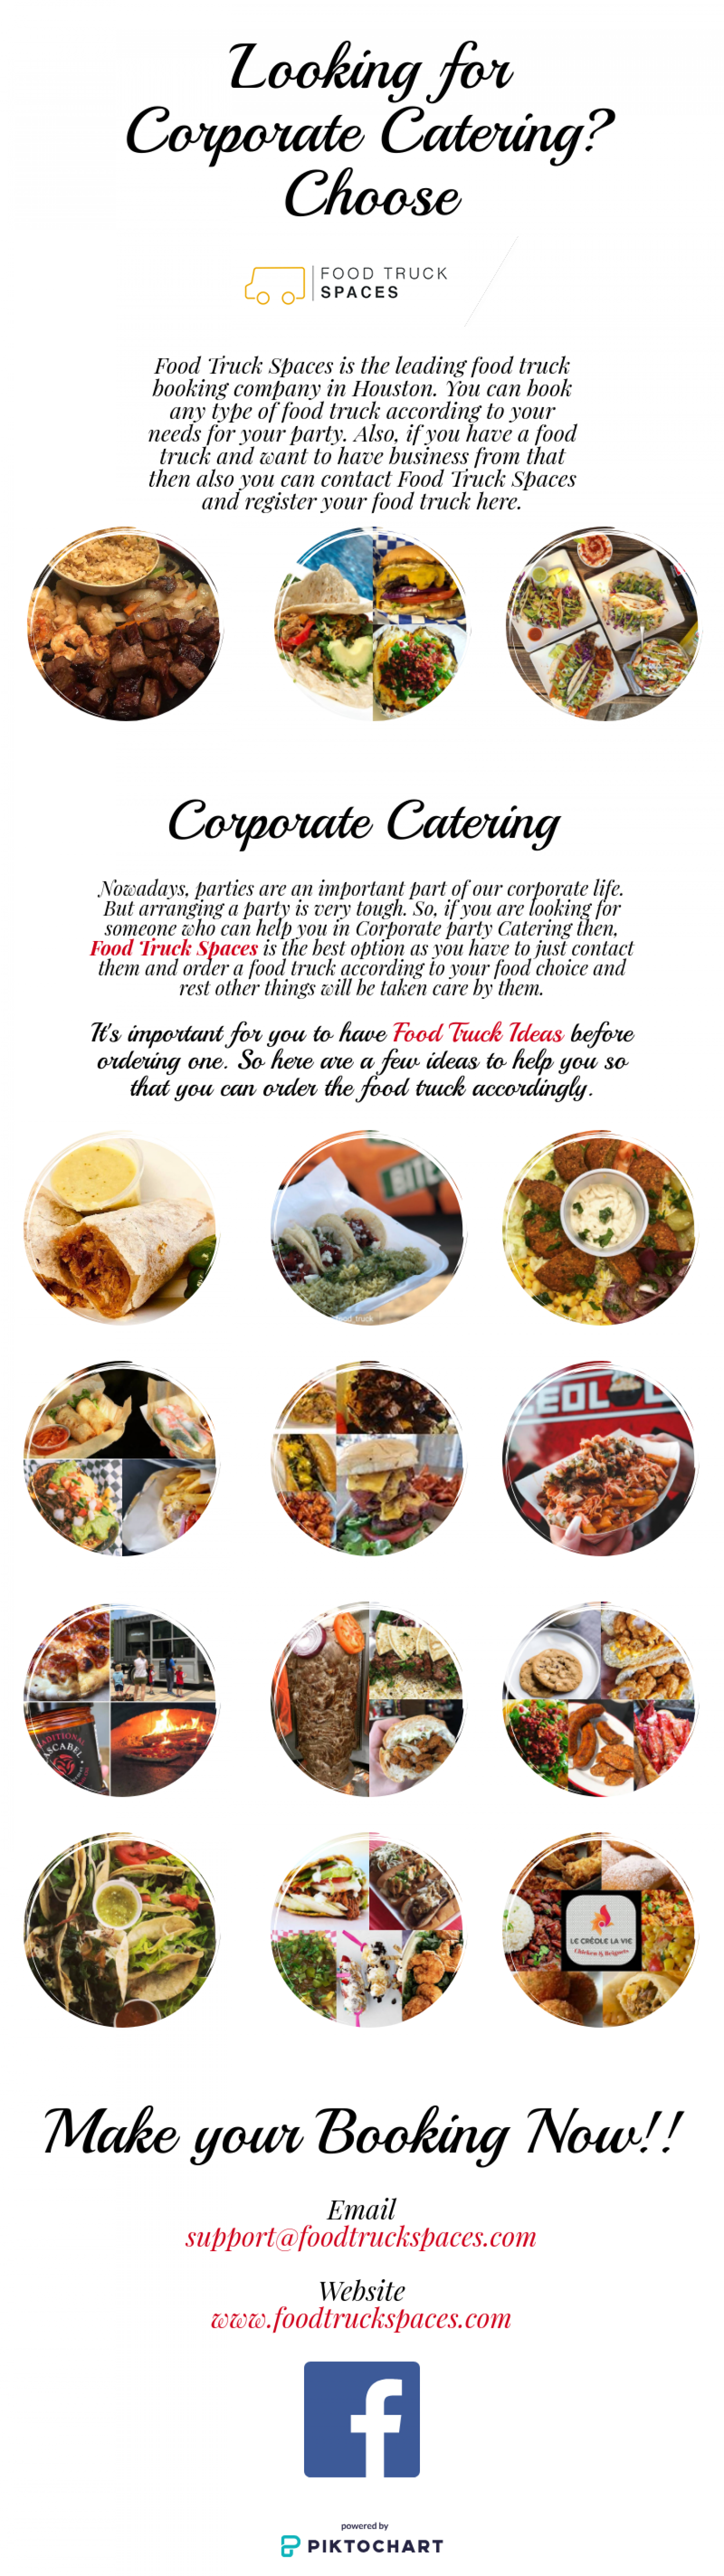 Looking for Corporate Catering? Choose Food Truck Spaces Infographic